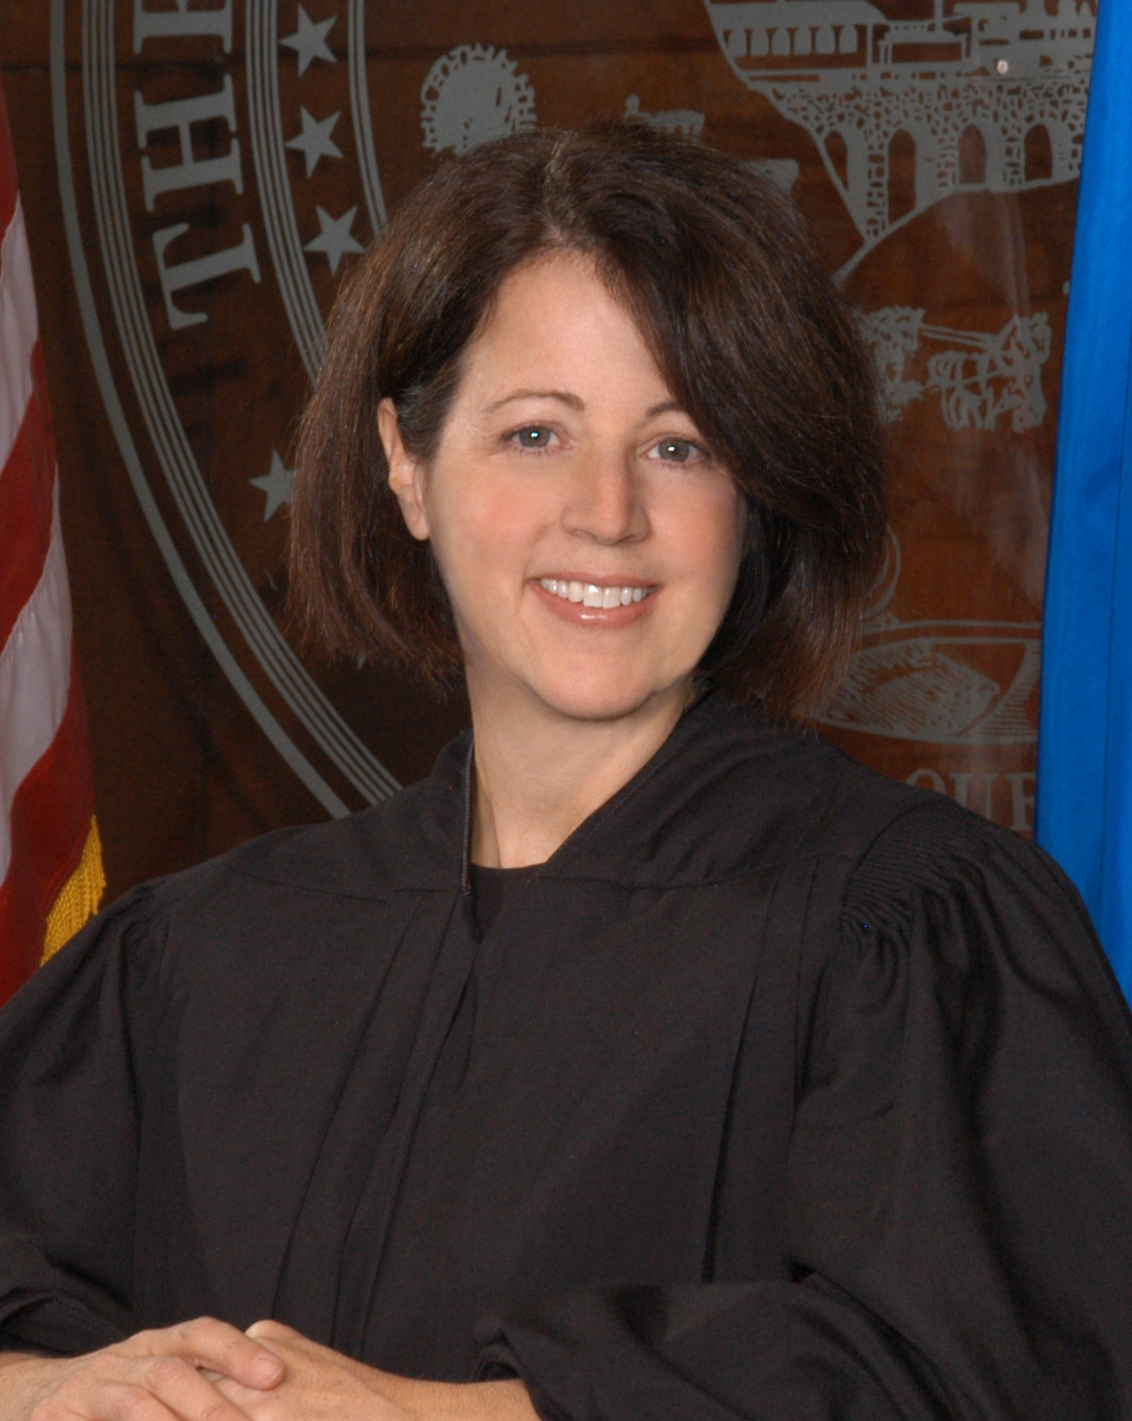 Judge Tammy M. Riggs